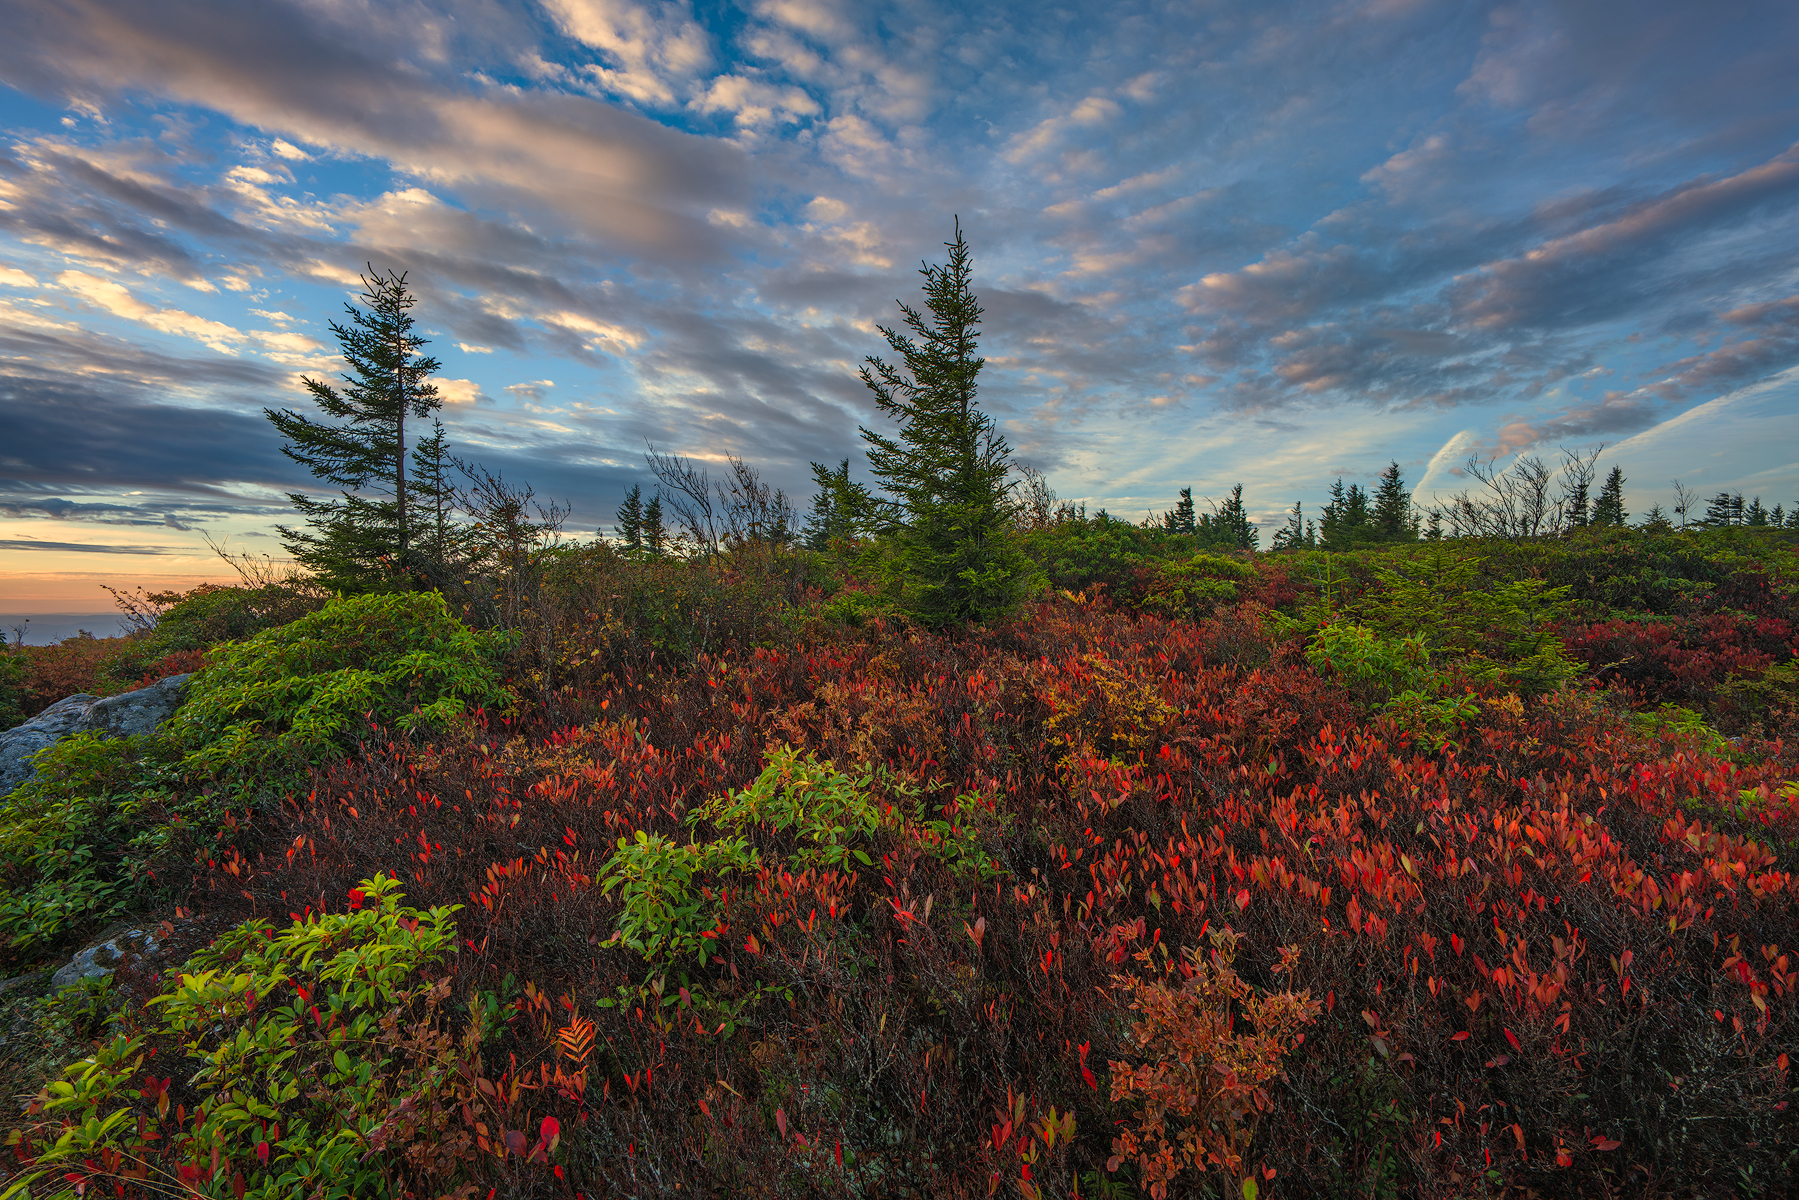 The beauty of sunrise at Dolly Sods Wilderness, West Virginia.